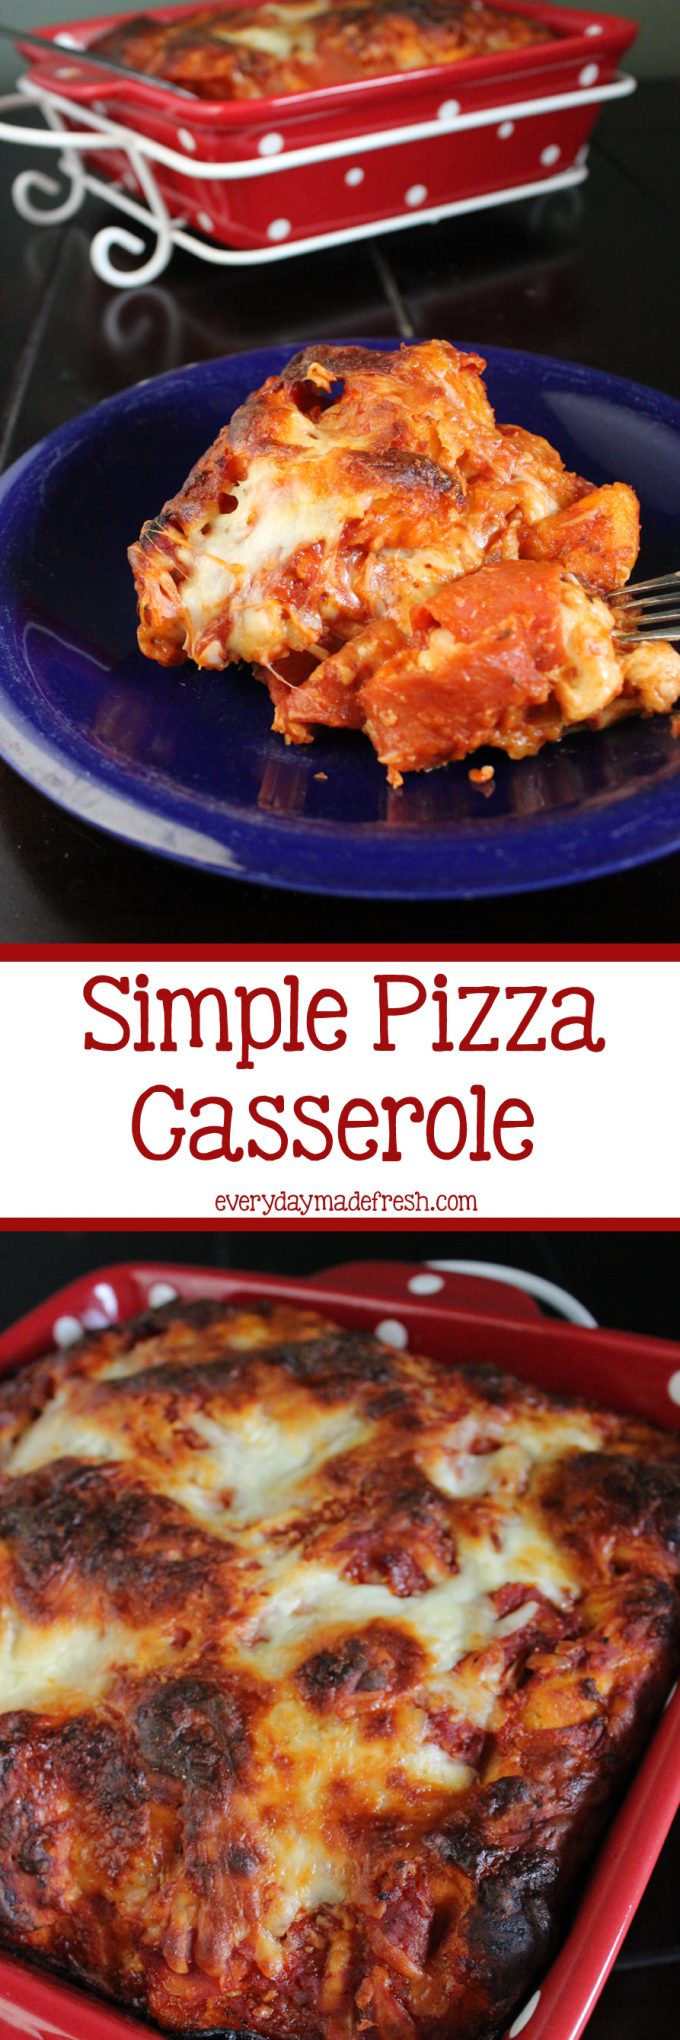 This Simple Pizza Casserole is made quick, using canned biscuits, cheese, and any of your favorite toppings. If will be your family's choice for pizza night!